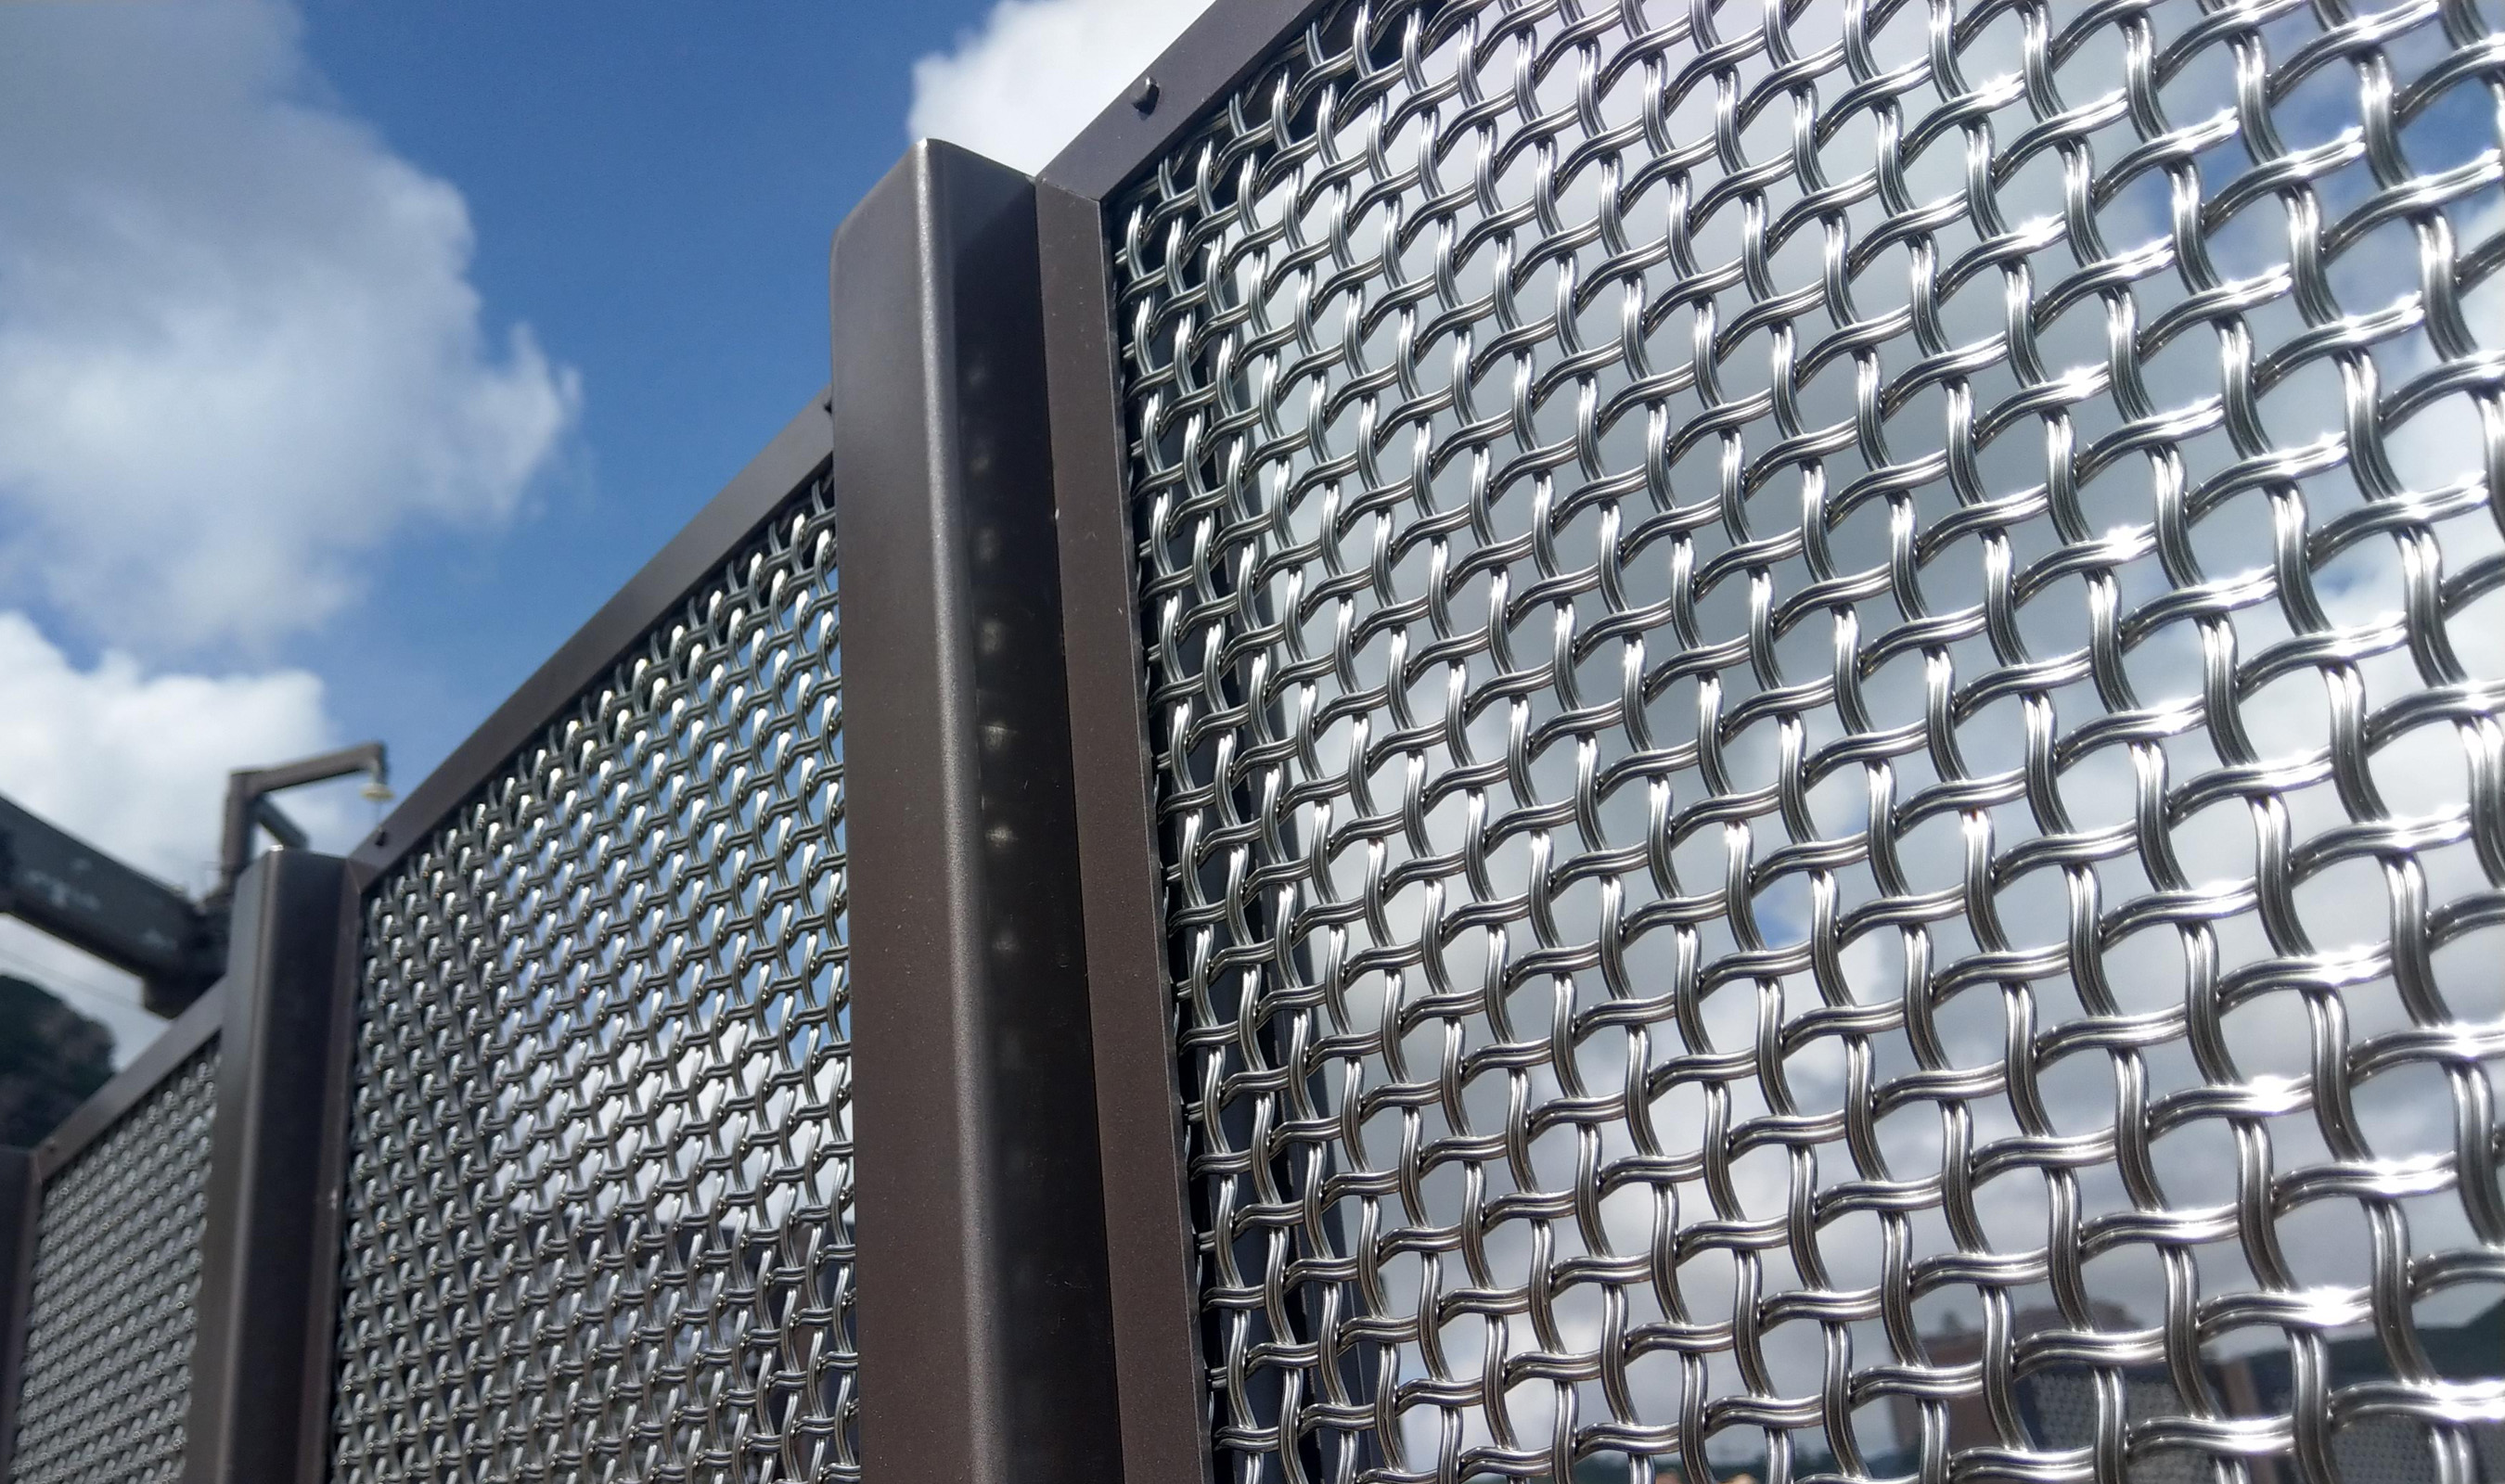 M22-83 wire mesh rooftop fence screen